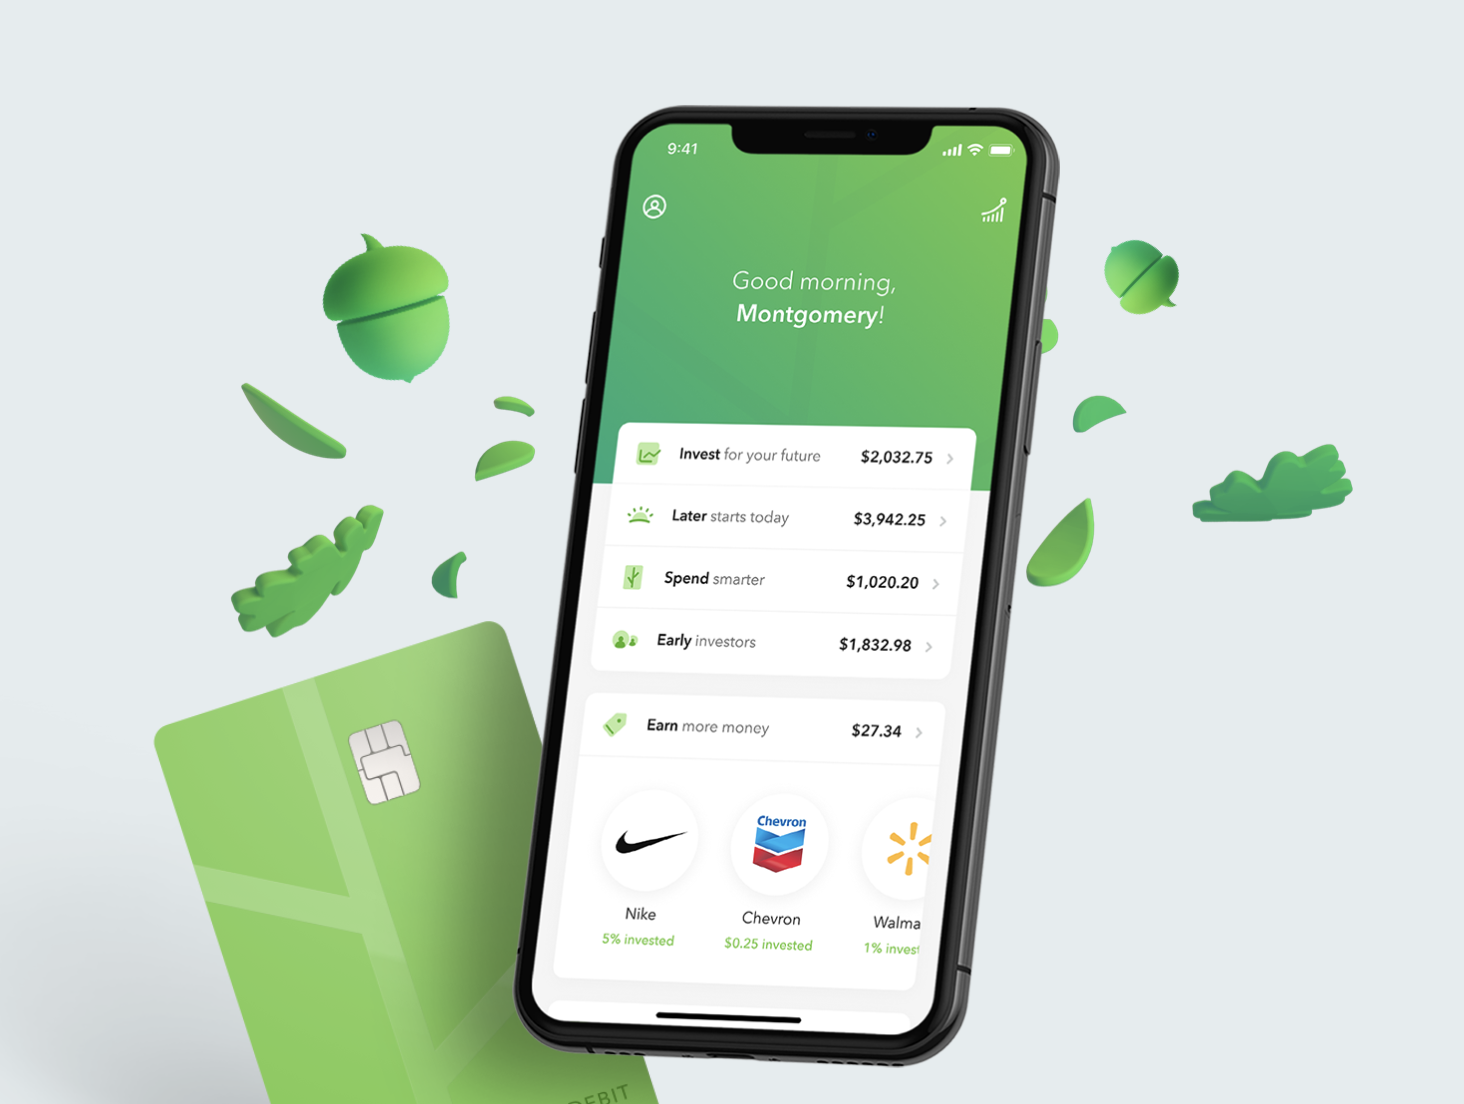 A phone screen showing the Acorns app, which specifies money for investing, spending, and earnings offers